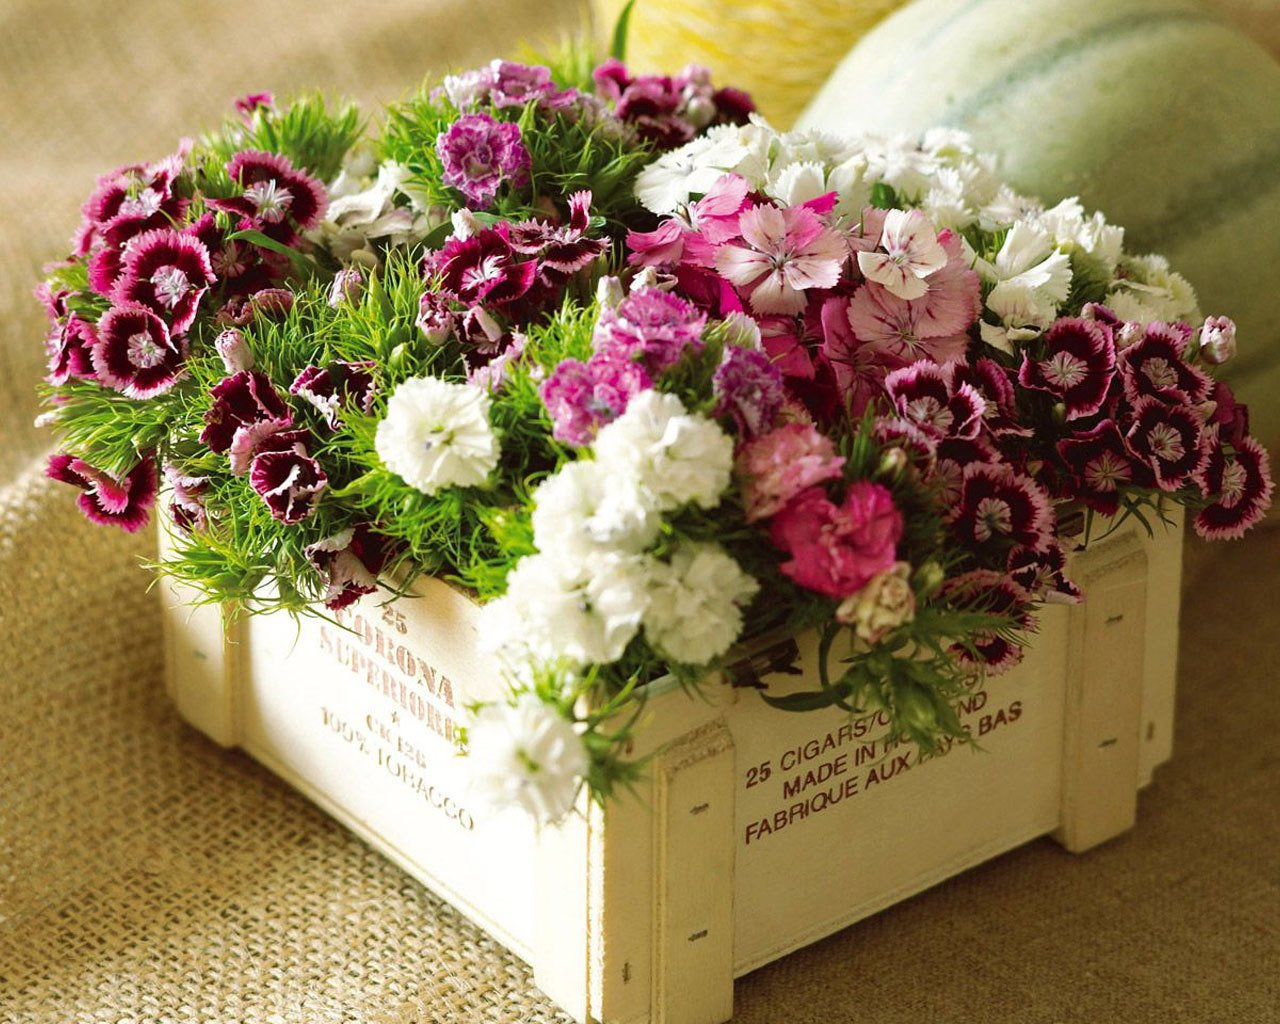 http://2.bp.blogspot.com/_Qu-KxwZh9G4/TBuwMqCWS0I/AAAAAAAATyg/jZ_cHm8-wow/s1600/Flowers-in-box-wallpaper_1280x1024.jpg